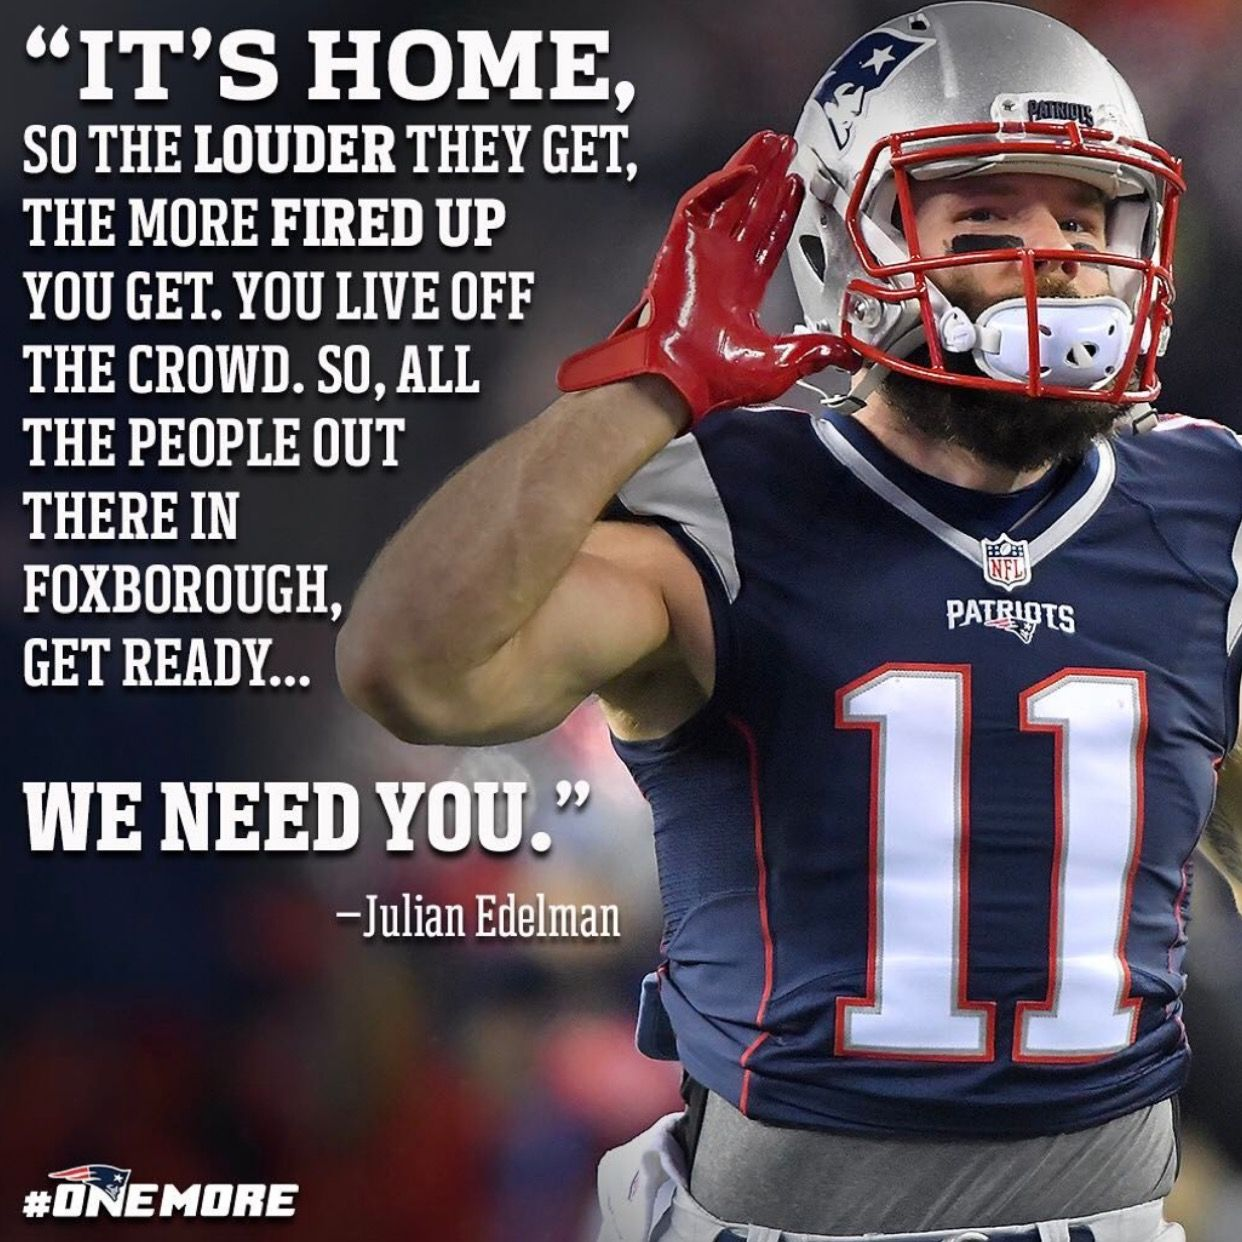 Julian With Images New England Patriots New England Patriots Football Julian Edelman